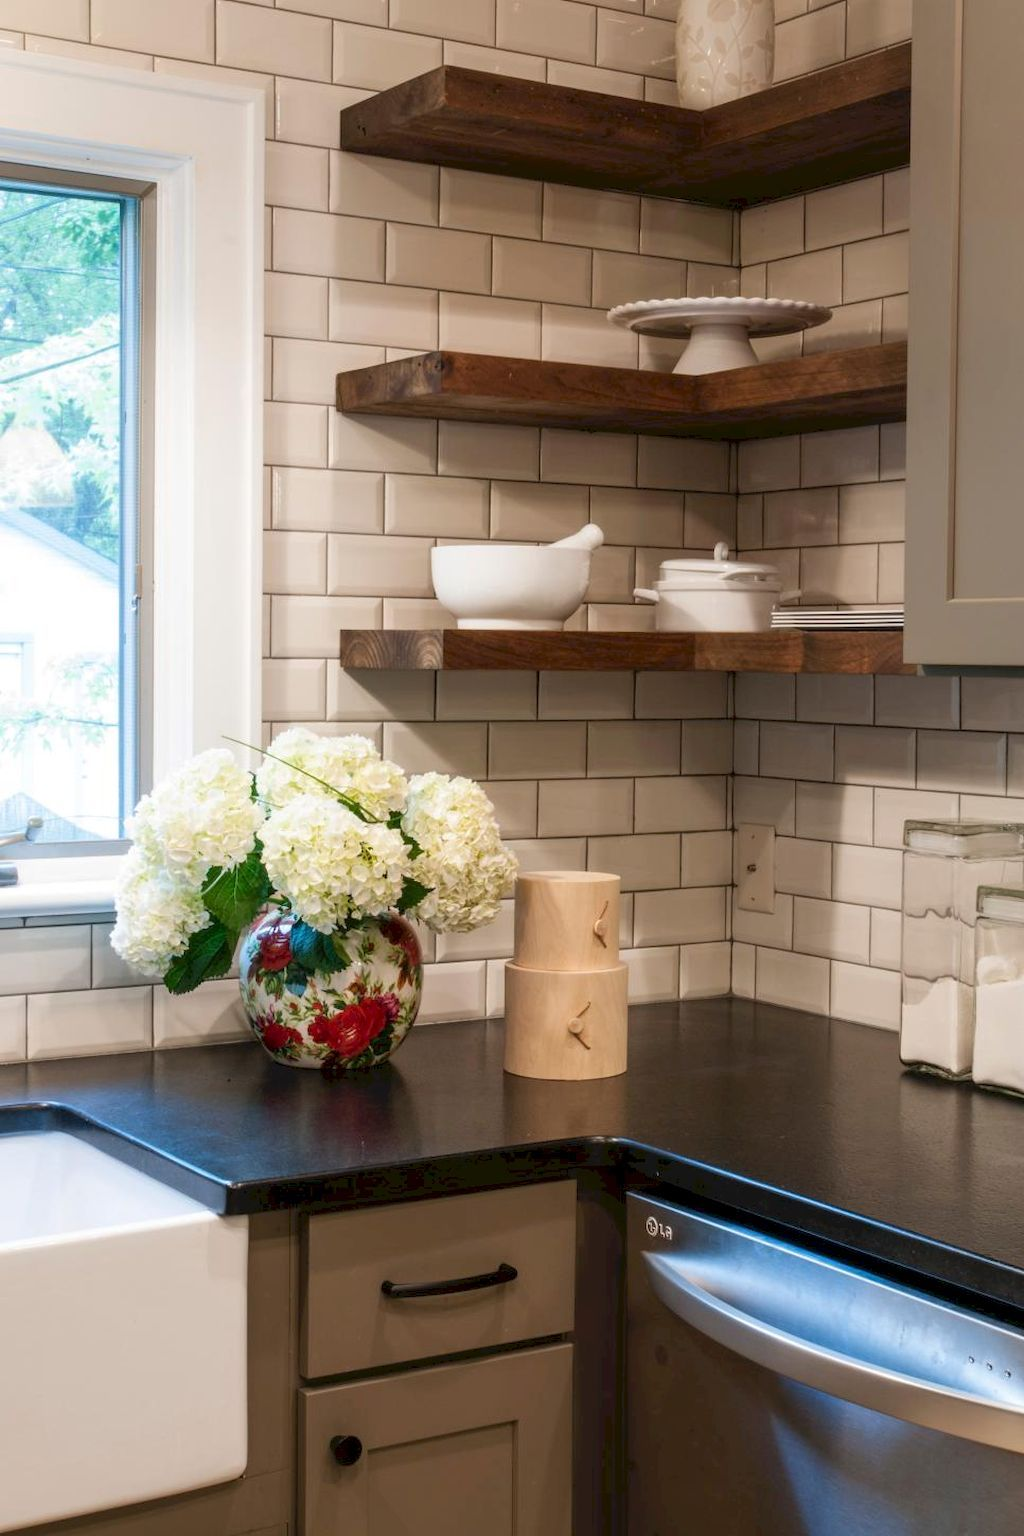 small kitchen renovations before and after home plans black floating shelves best ideas bunnings cabinet handles computer desk under wall mounted for cable box dvd player catalano